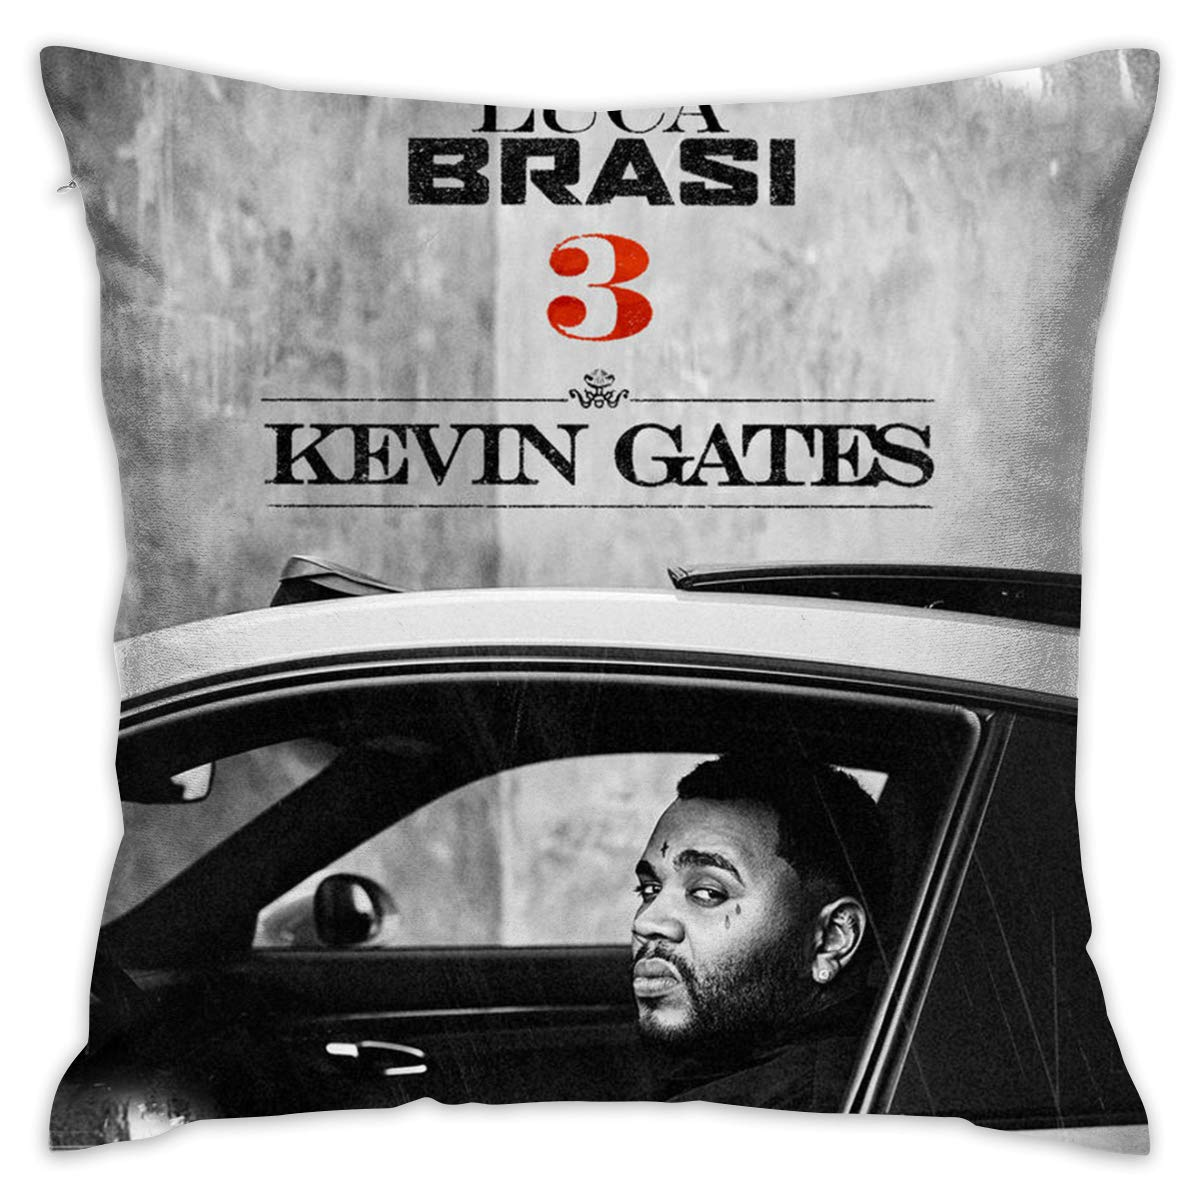 2 Sides ONE Size 20nch20inch Pillow Case CharlieRGill Kevin Gates Luca Brasi Gift Or Decor for Play Room Kids Girls Son Home Kids Room Lover